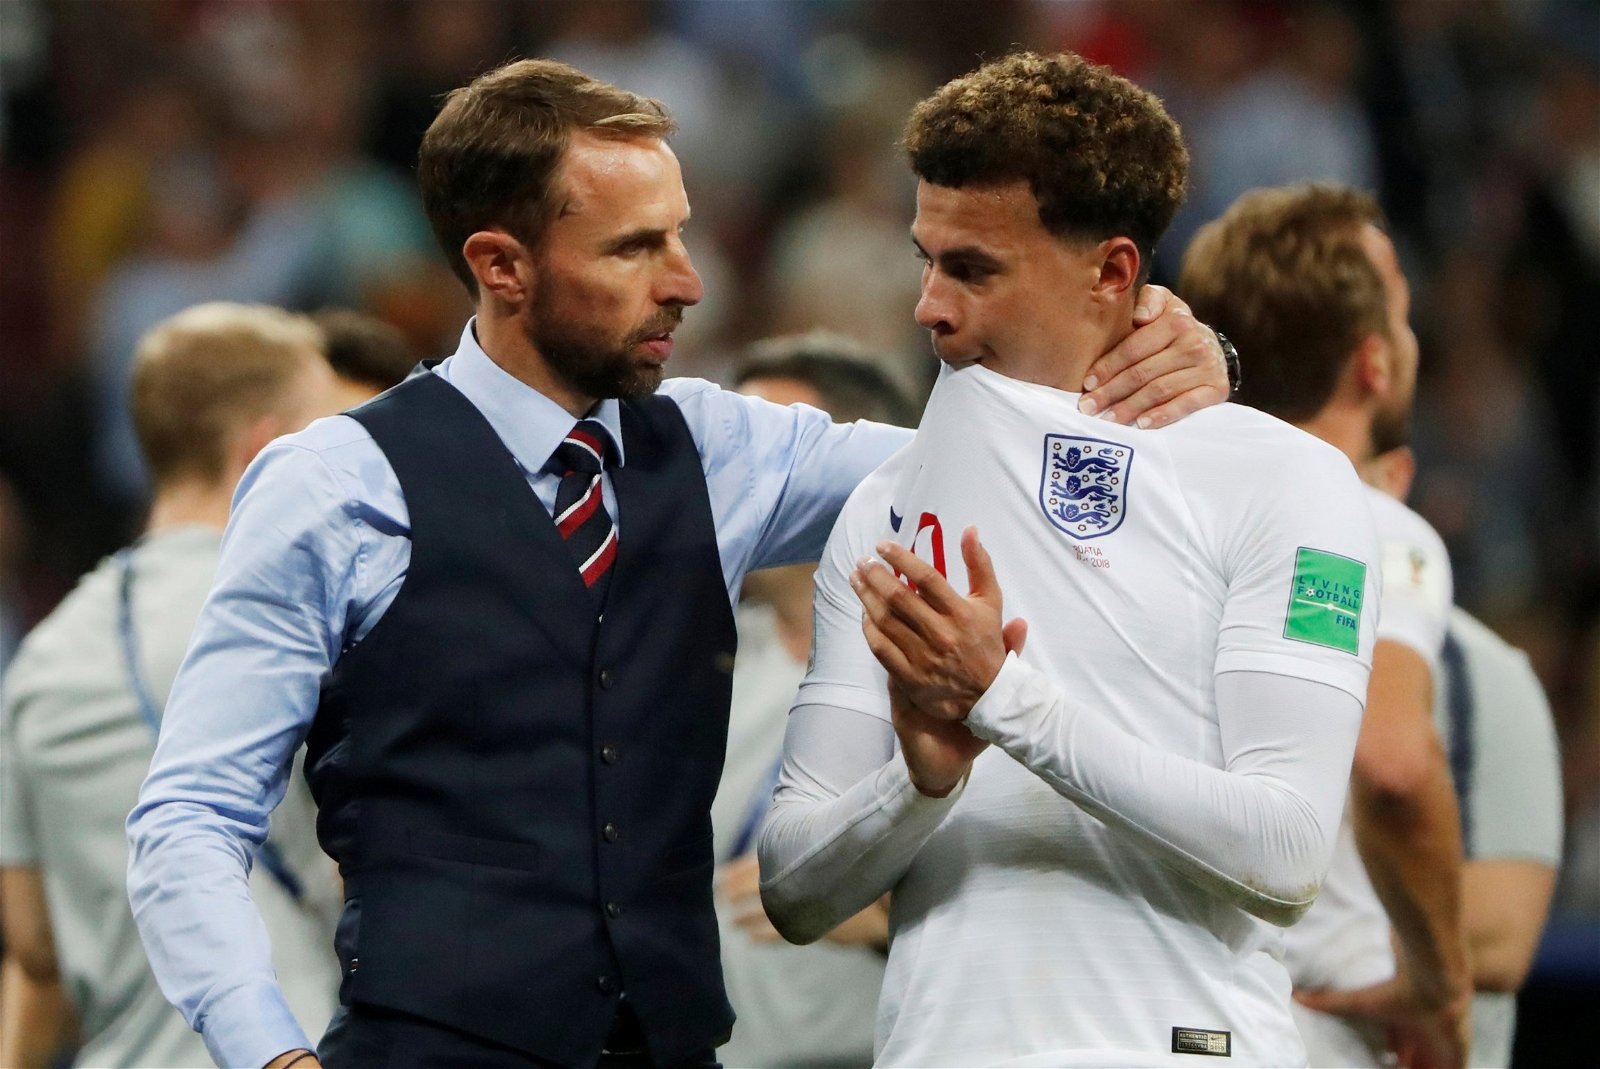 Gareth Southgate must build on England's World Cup campaign with ruthless evolution